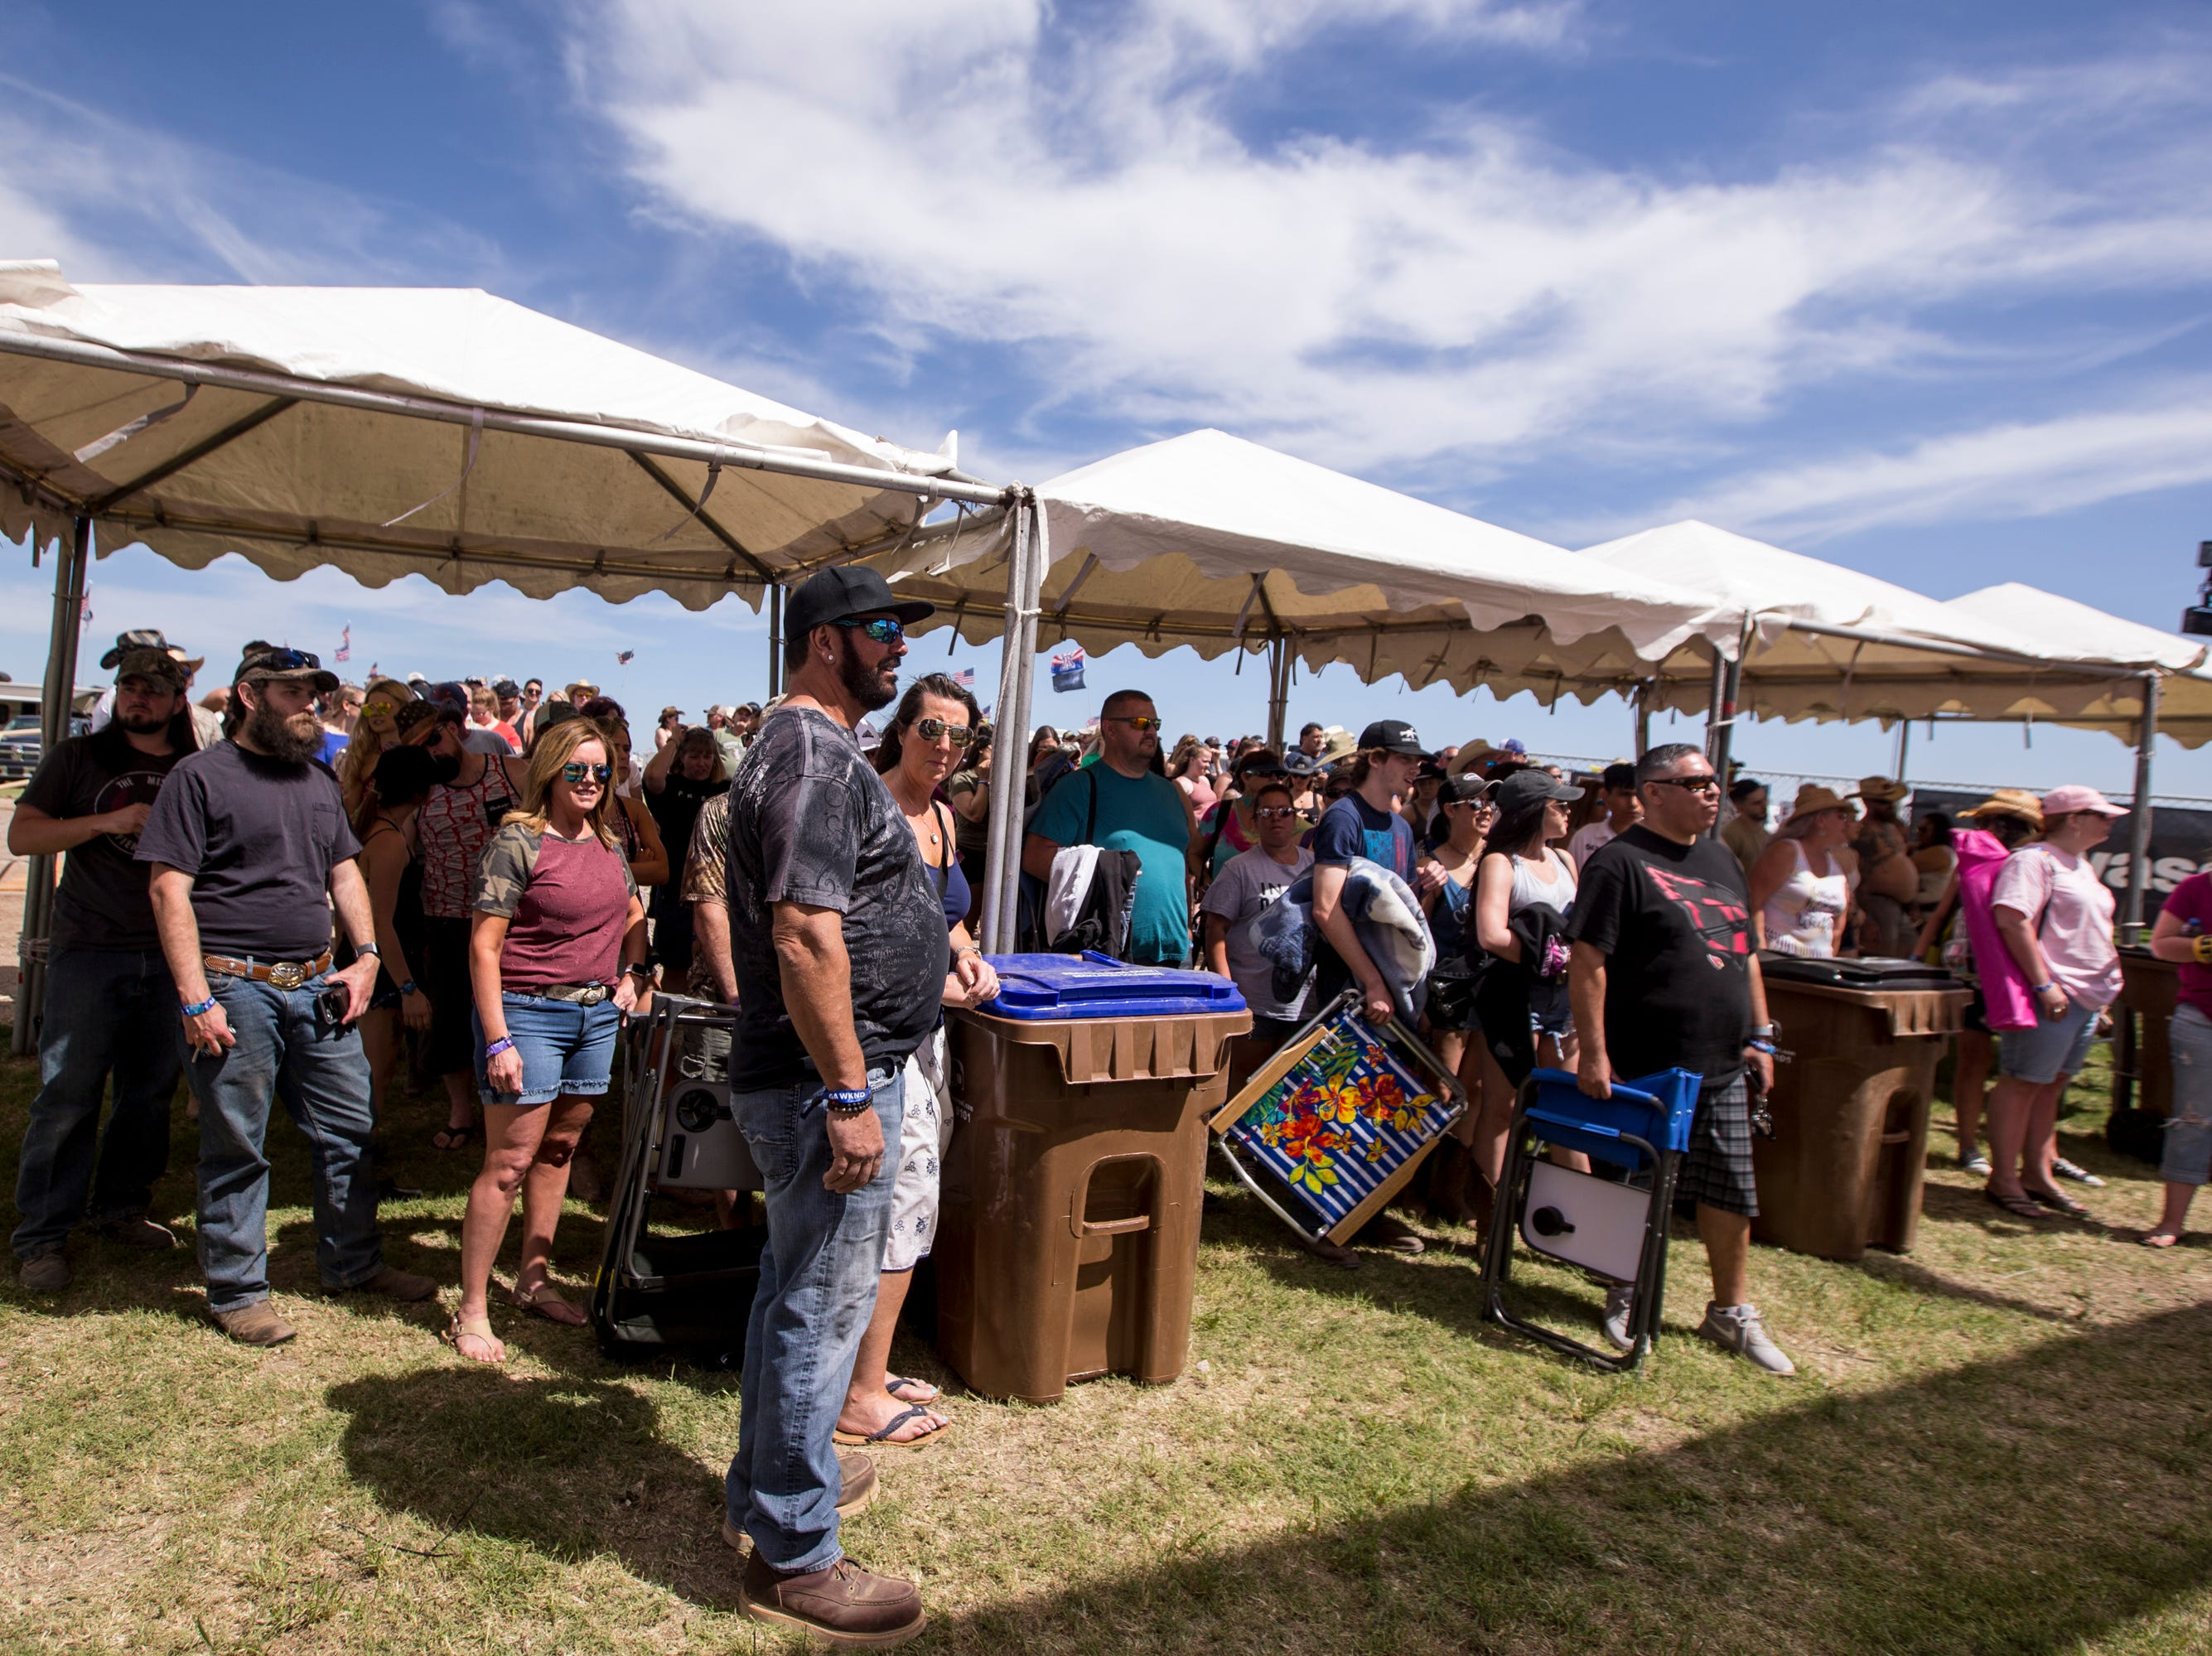 Festival-goers wait in line at the entrance on April 11, 2019, during Day 1 of Country Thunder Arizona in Florence.